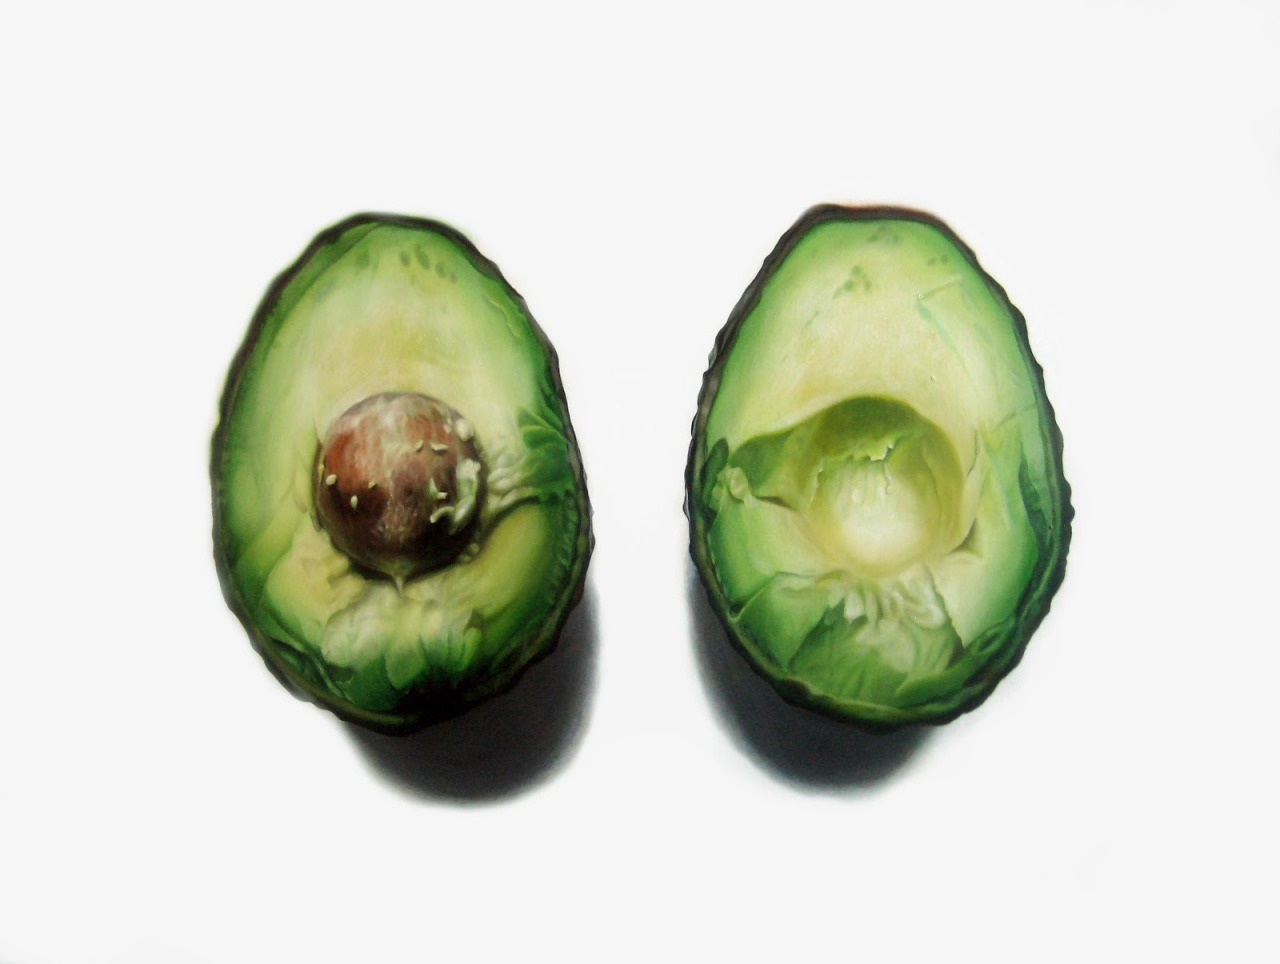 Super realistic avocado painting by Erin Rothstein